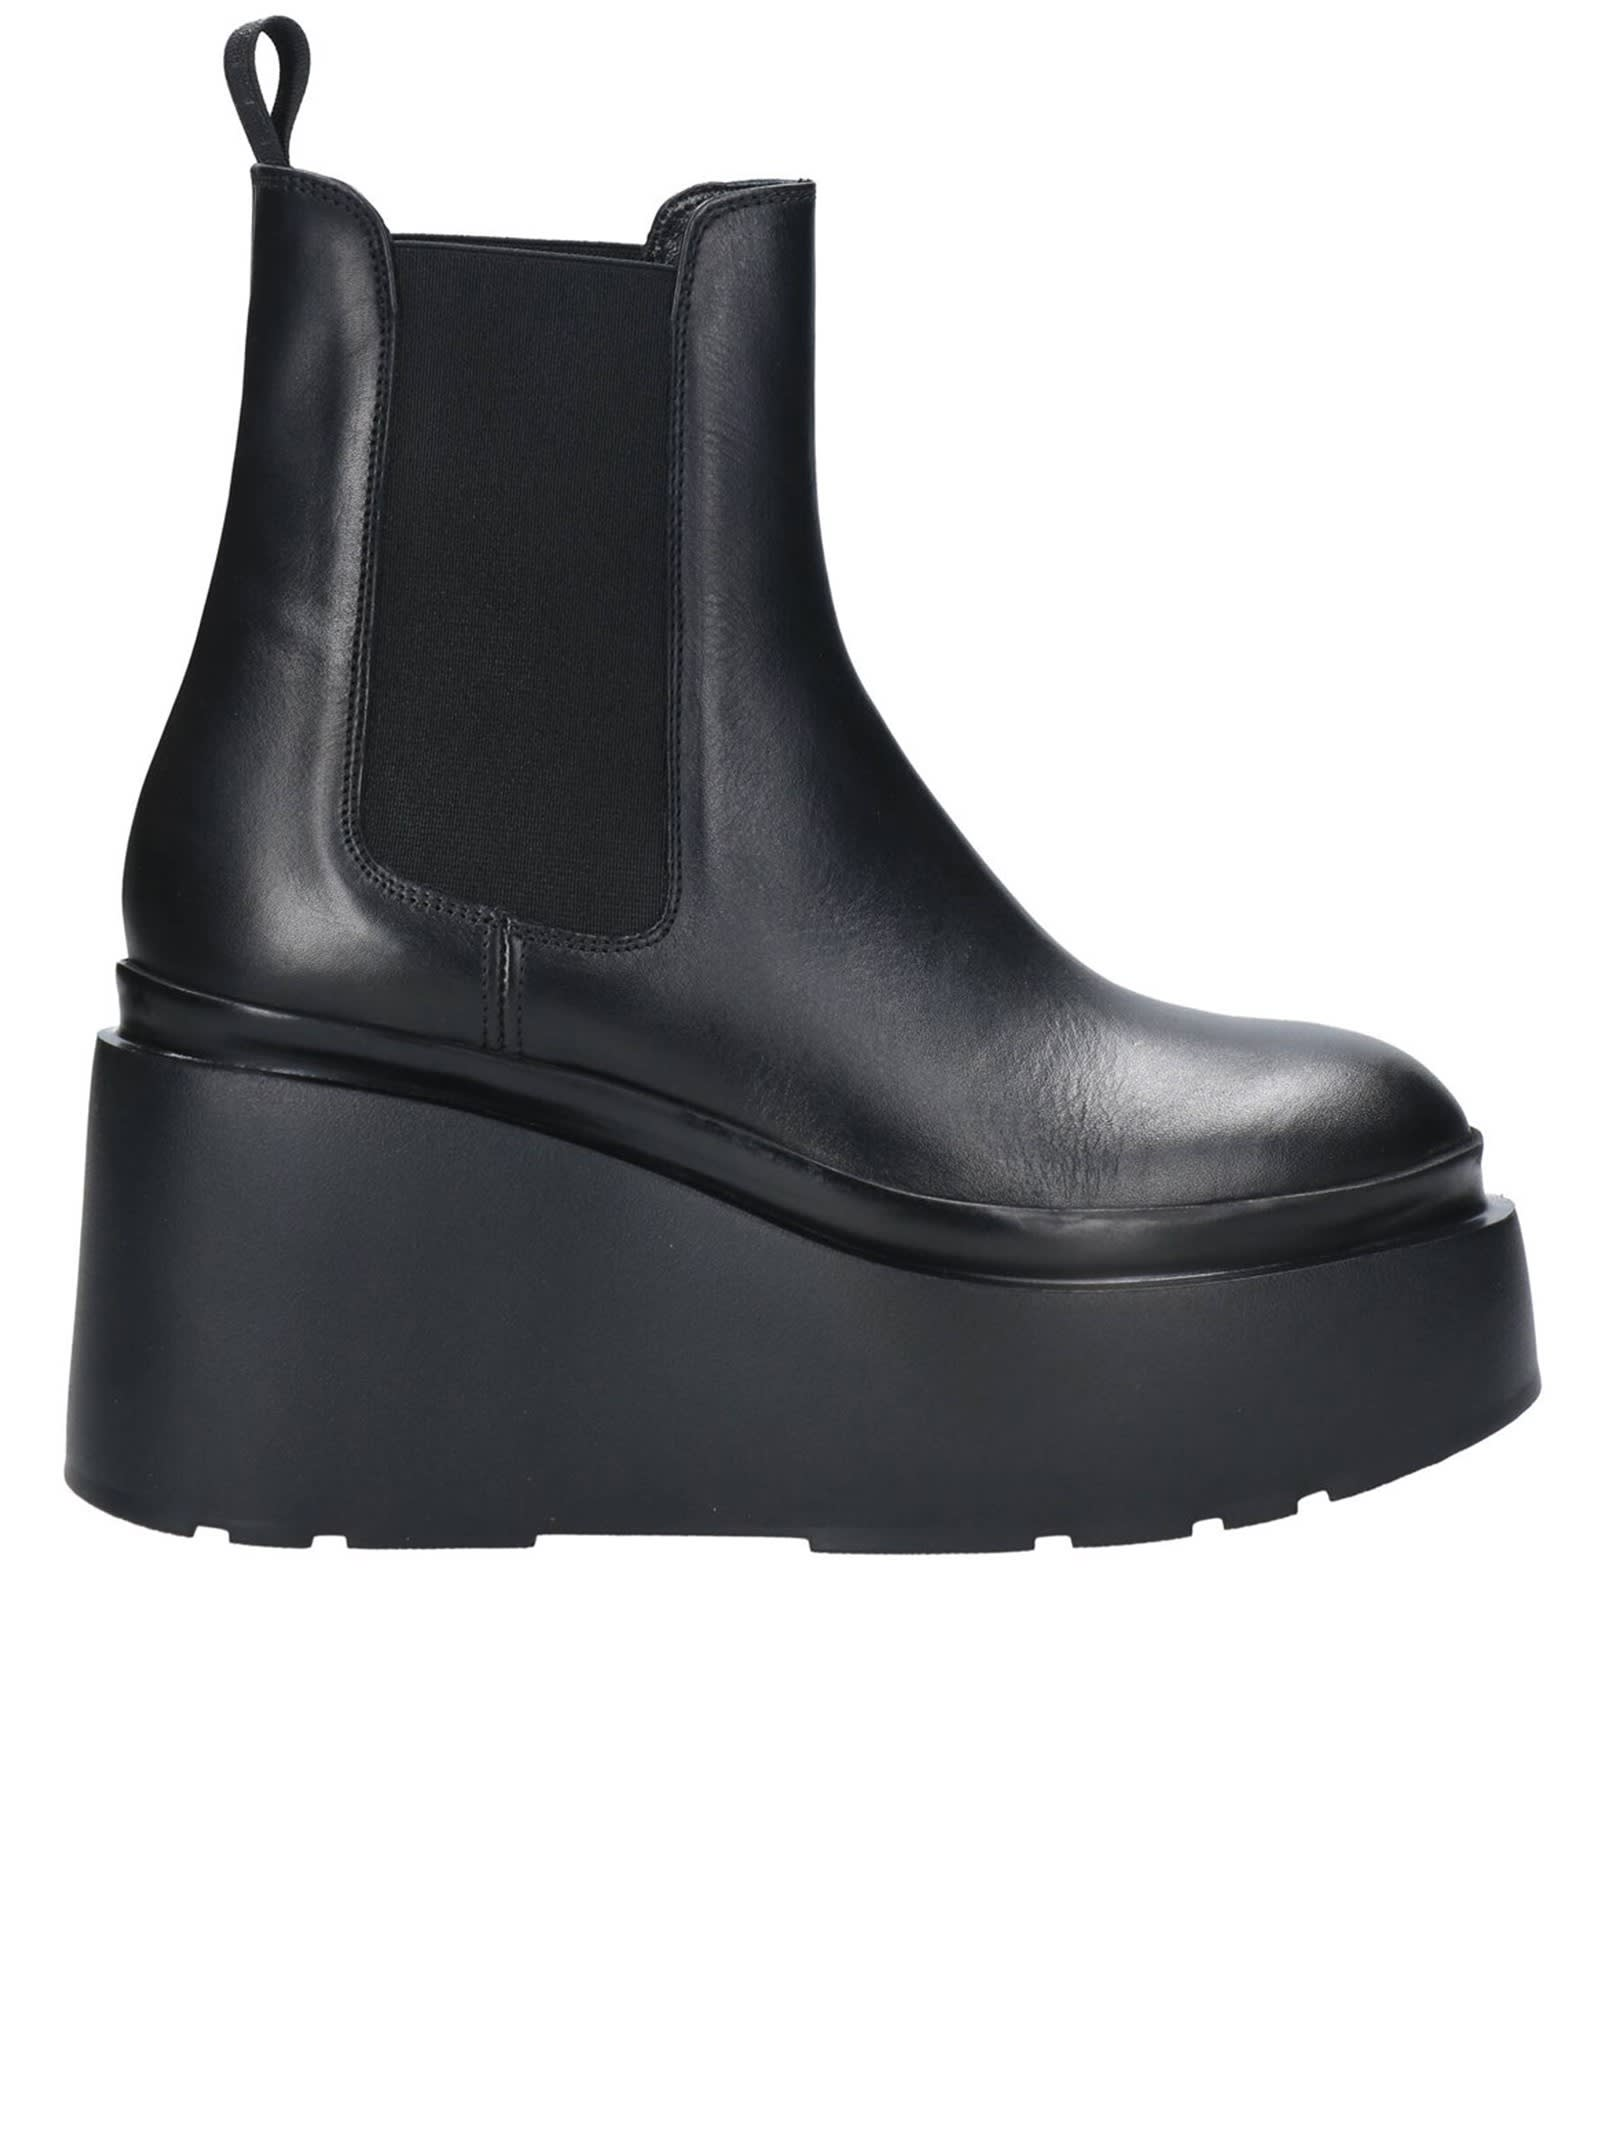 Black Leather Wedge Ankle Boots